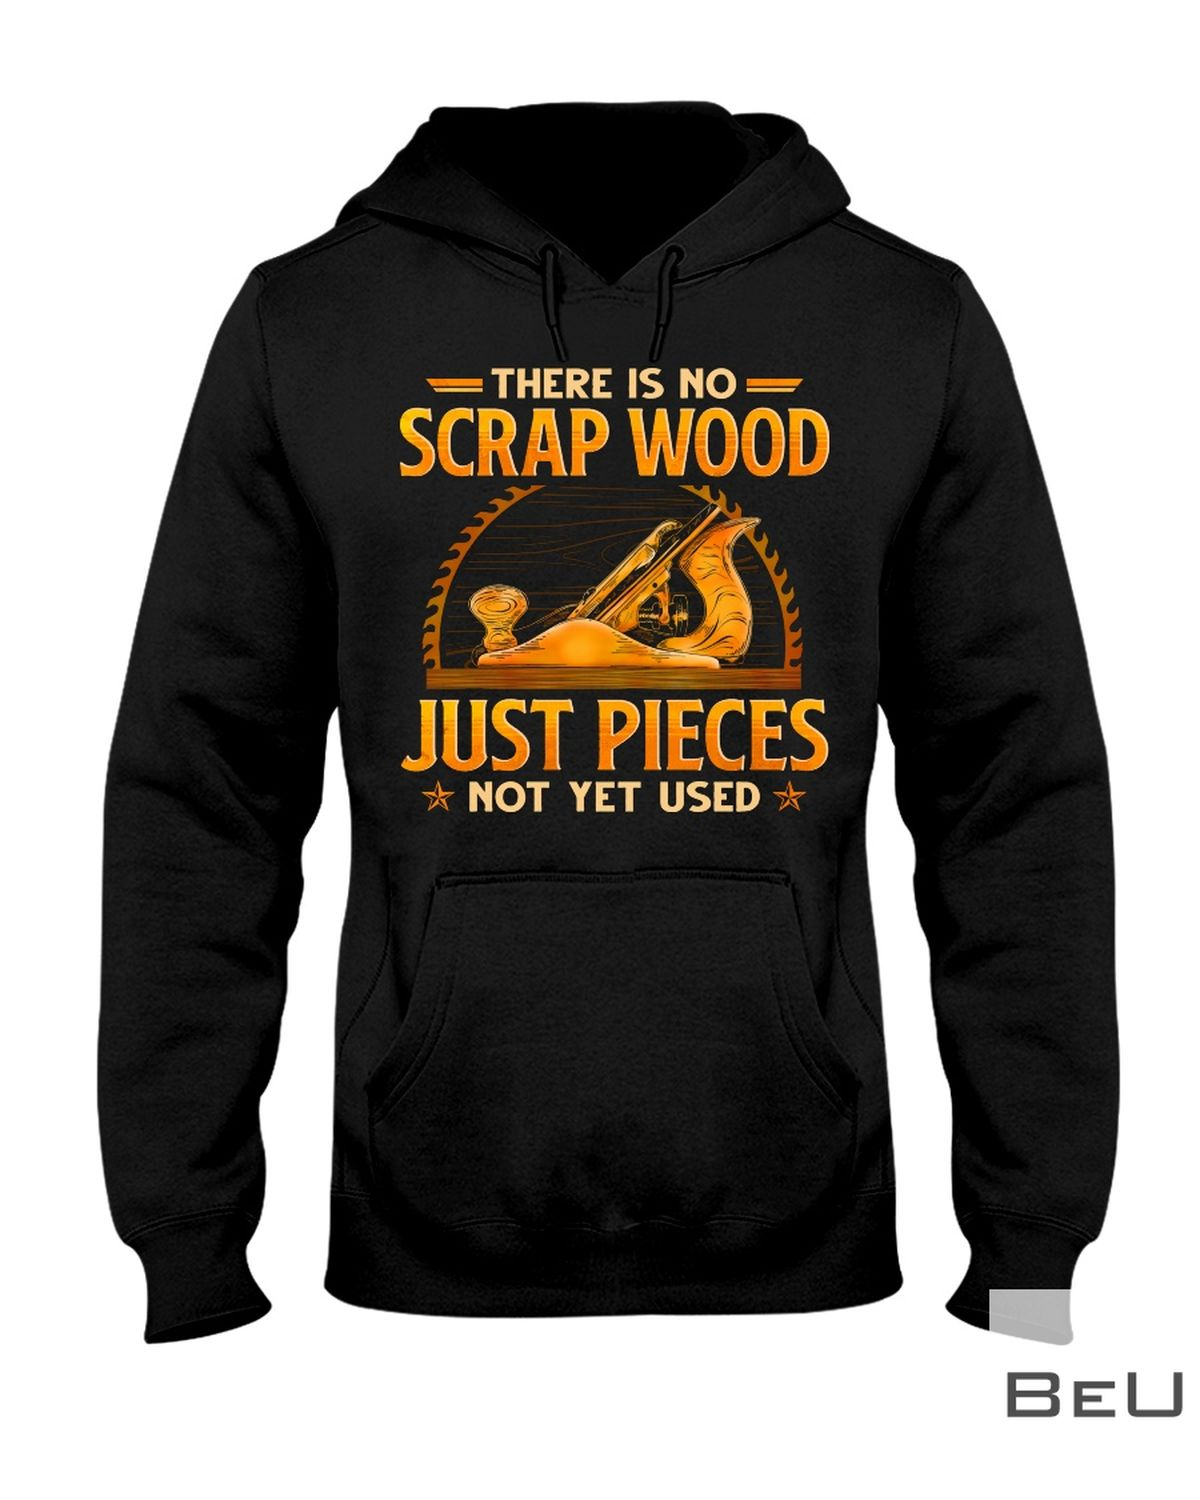 There Is No Scrap Wood Just Pieces Not Yet Used Shirtz